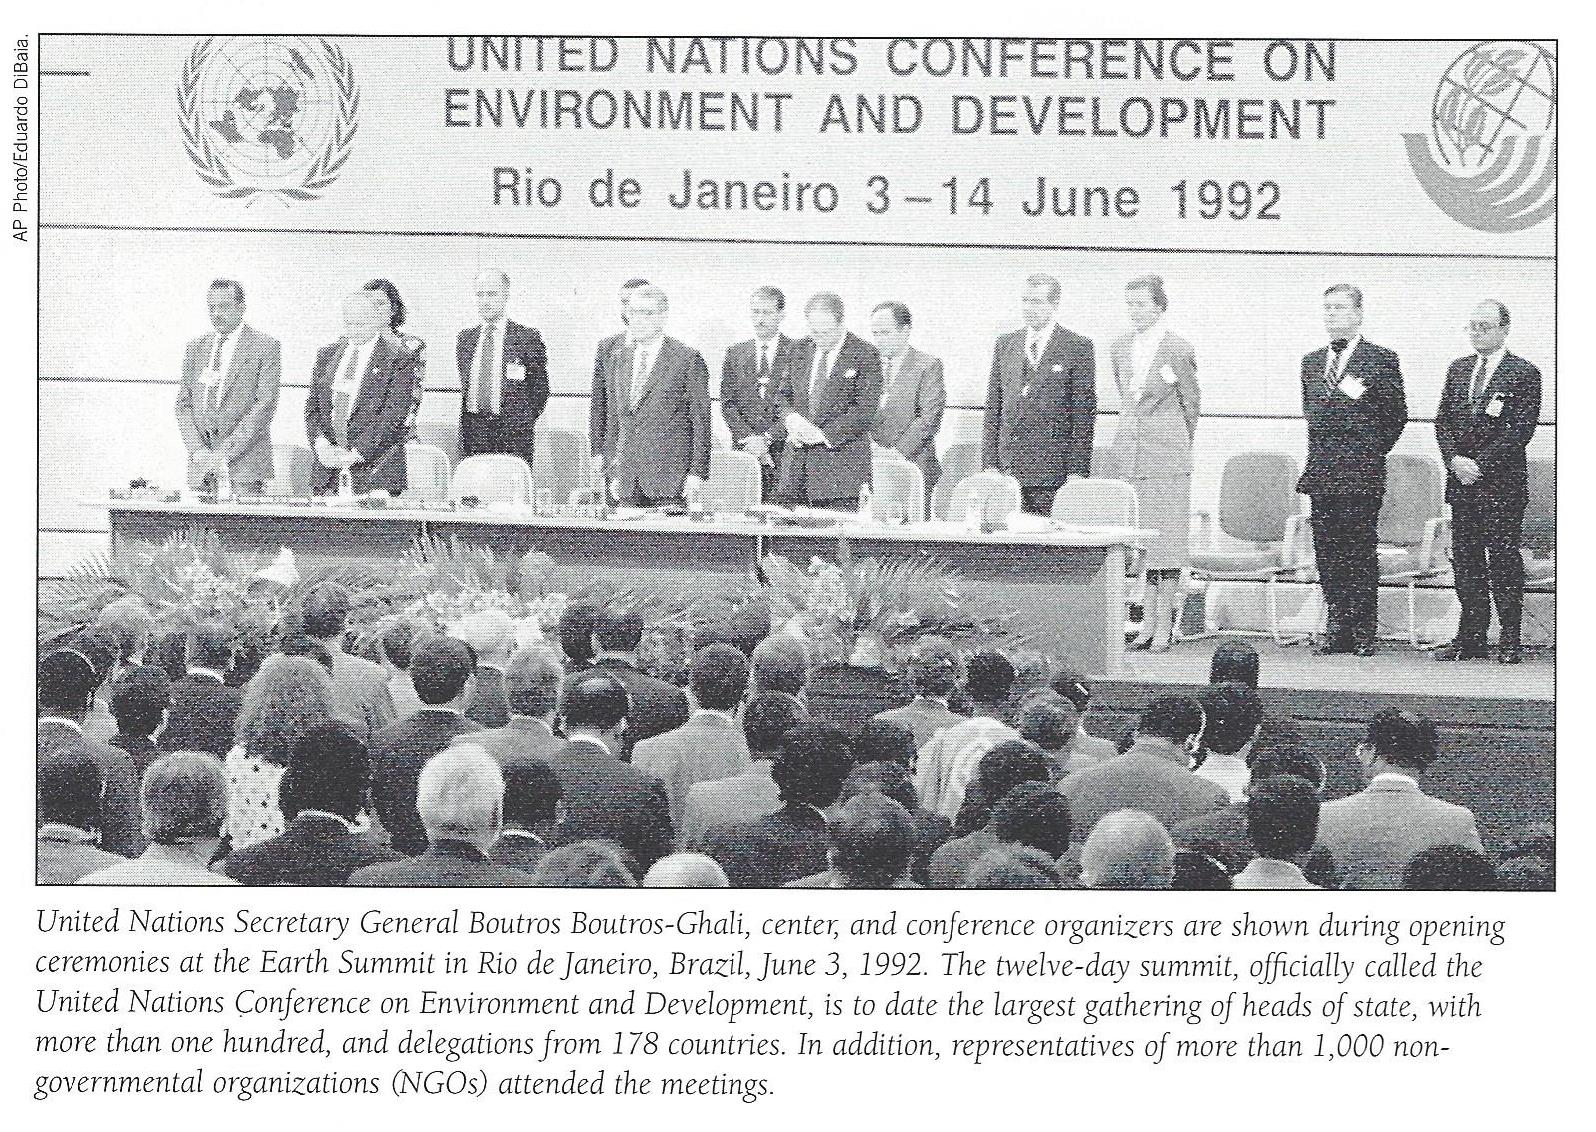 earth-summit-opening-ceremonies-1992